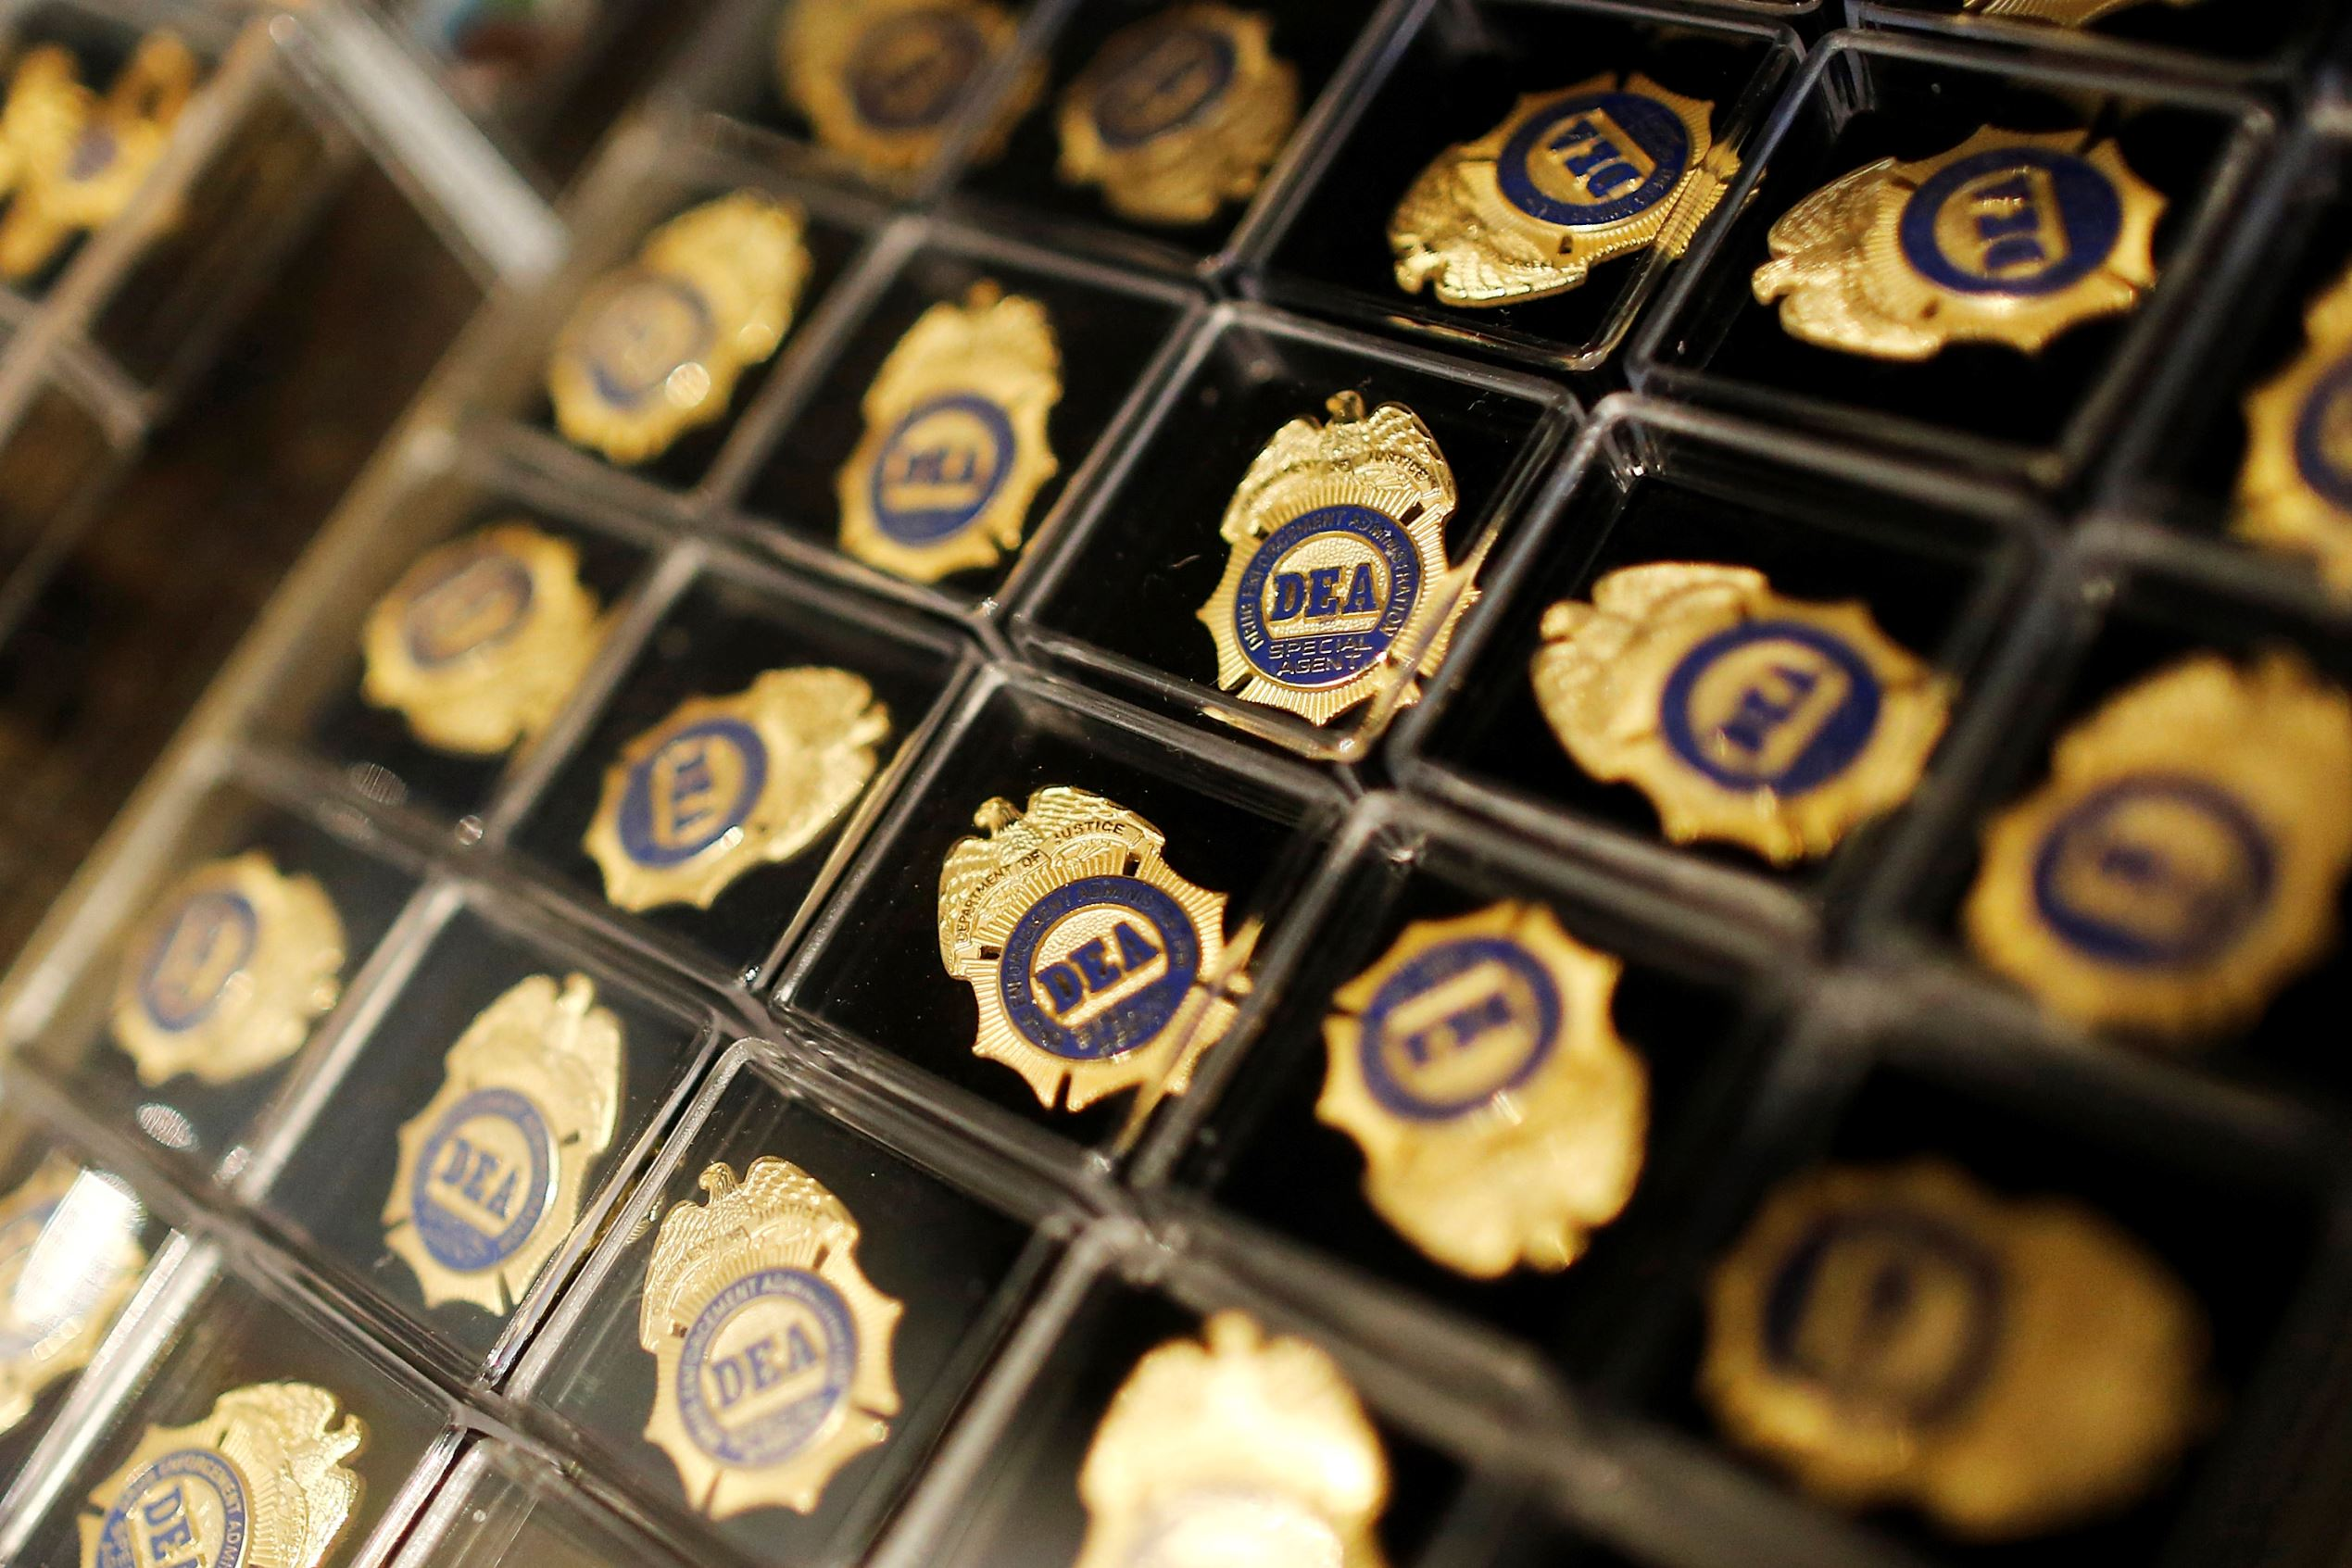 Miniature DEA badges are displayed for sale in the gift shop at the U.S. Drug Enforcement Administration (DEA) Museum in Arlington, Virginia.